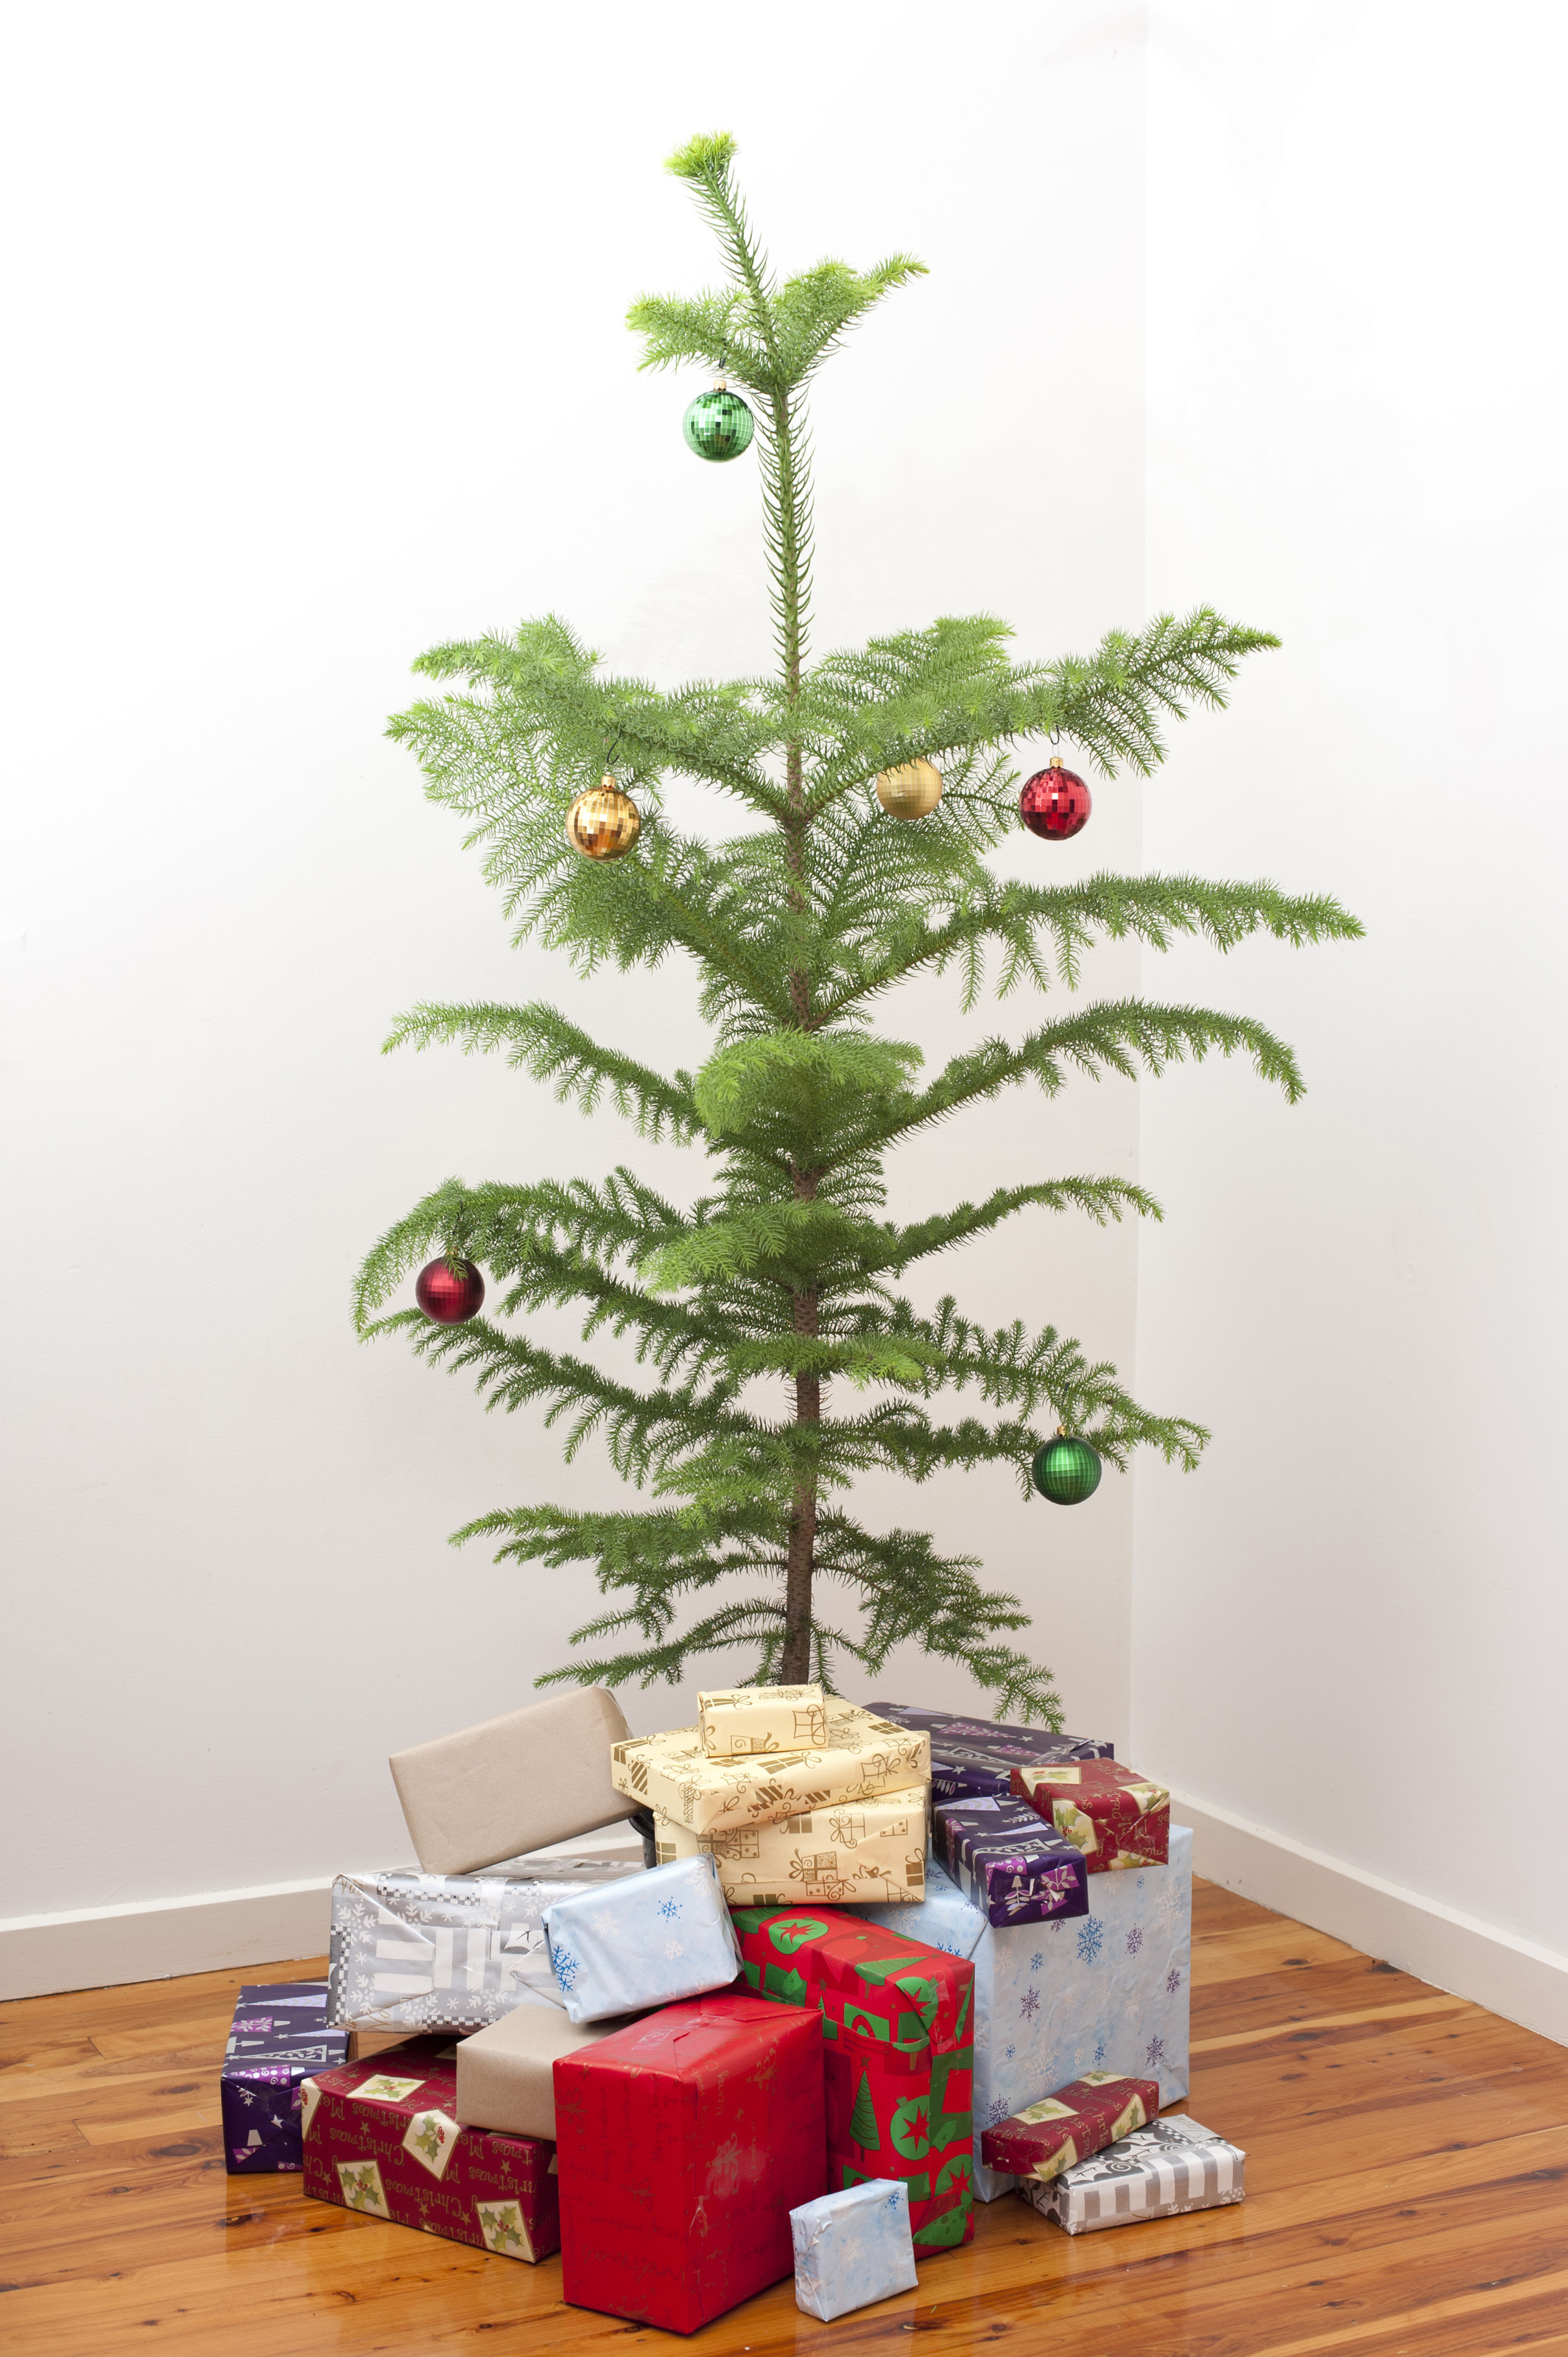 Small christmas tree 8250 stockarch free stock photos for Small designer christmas trees